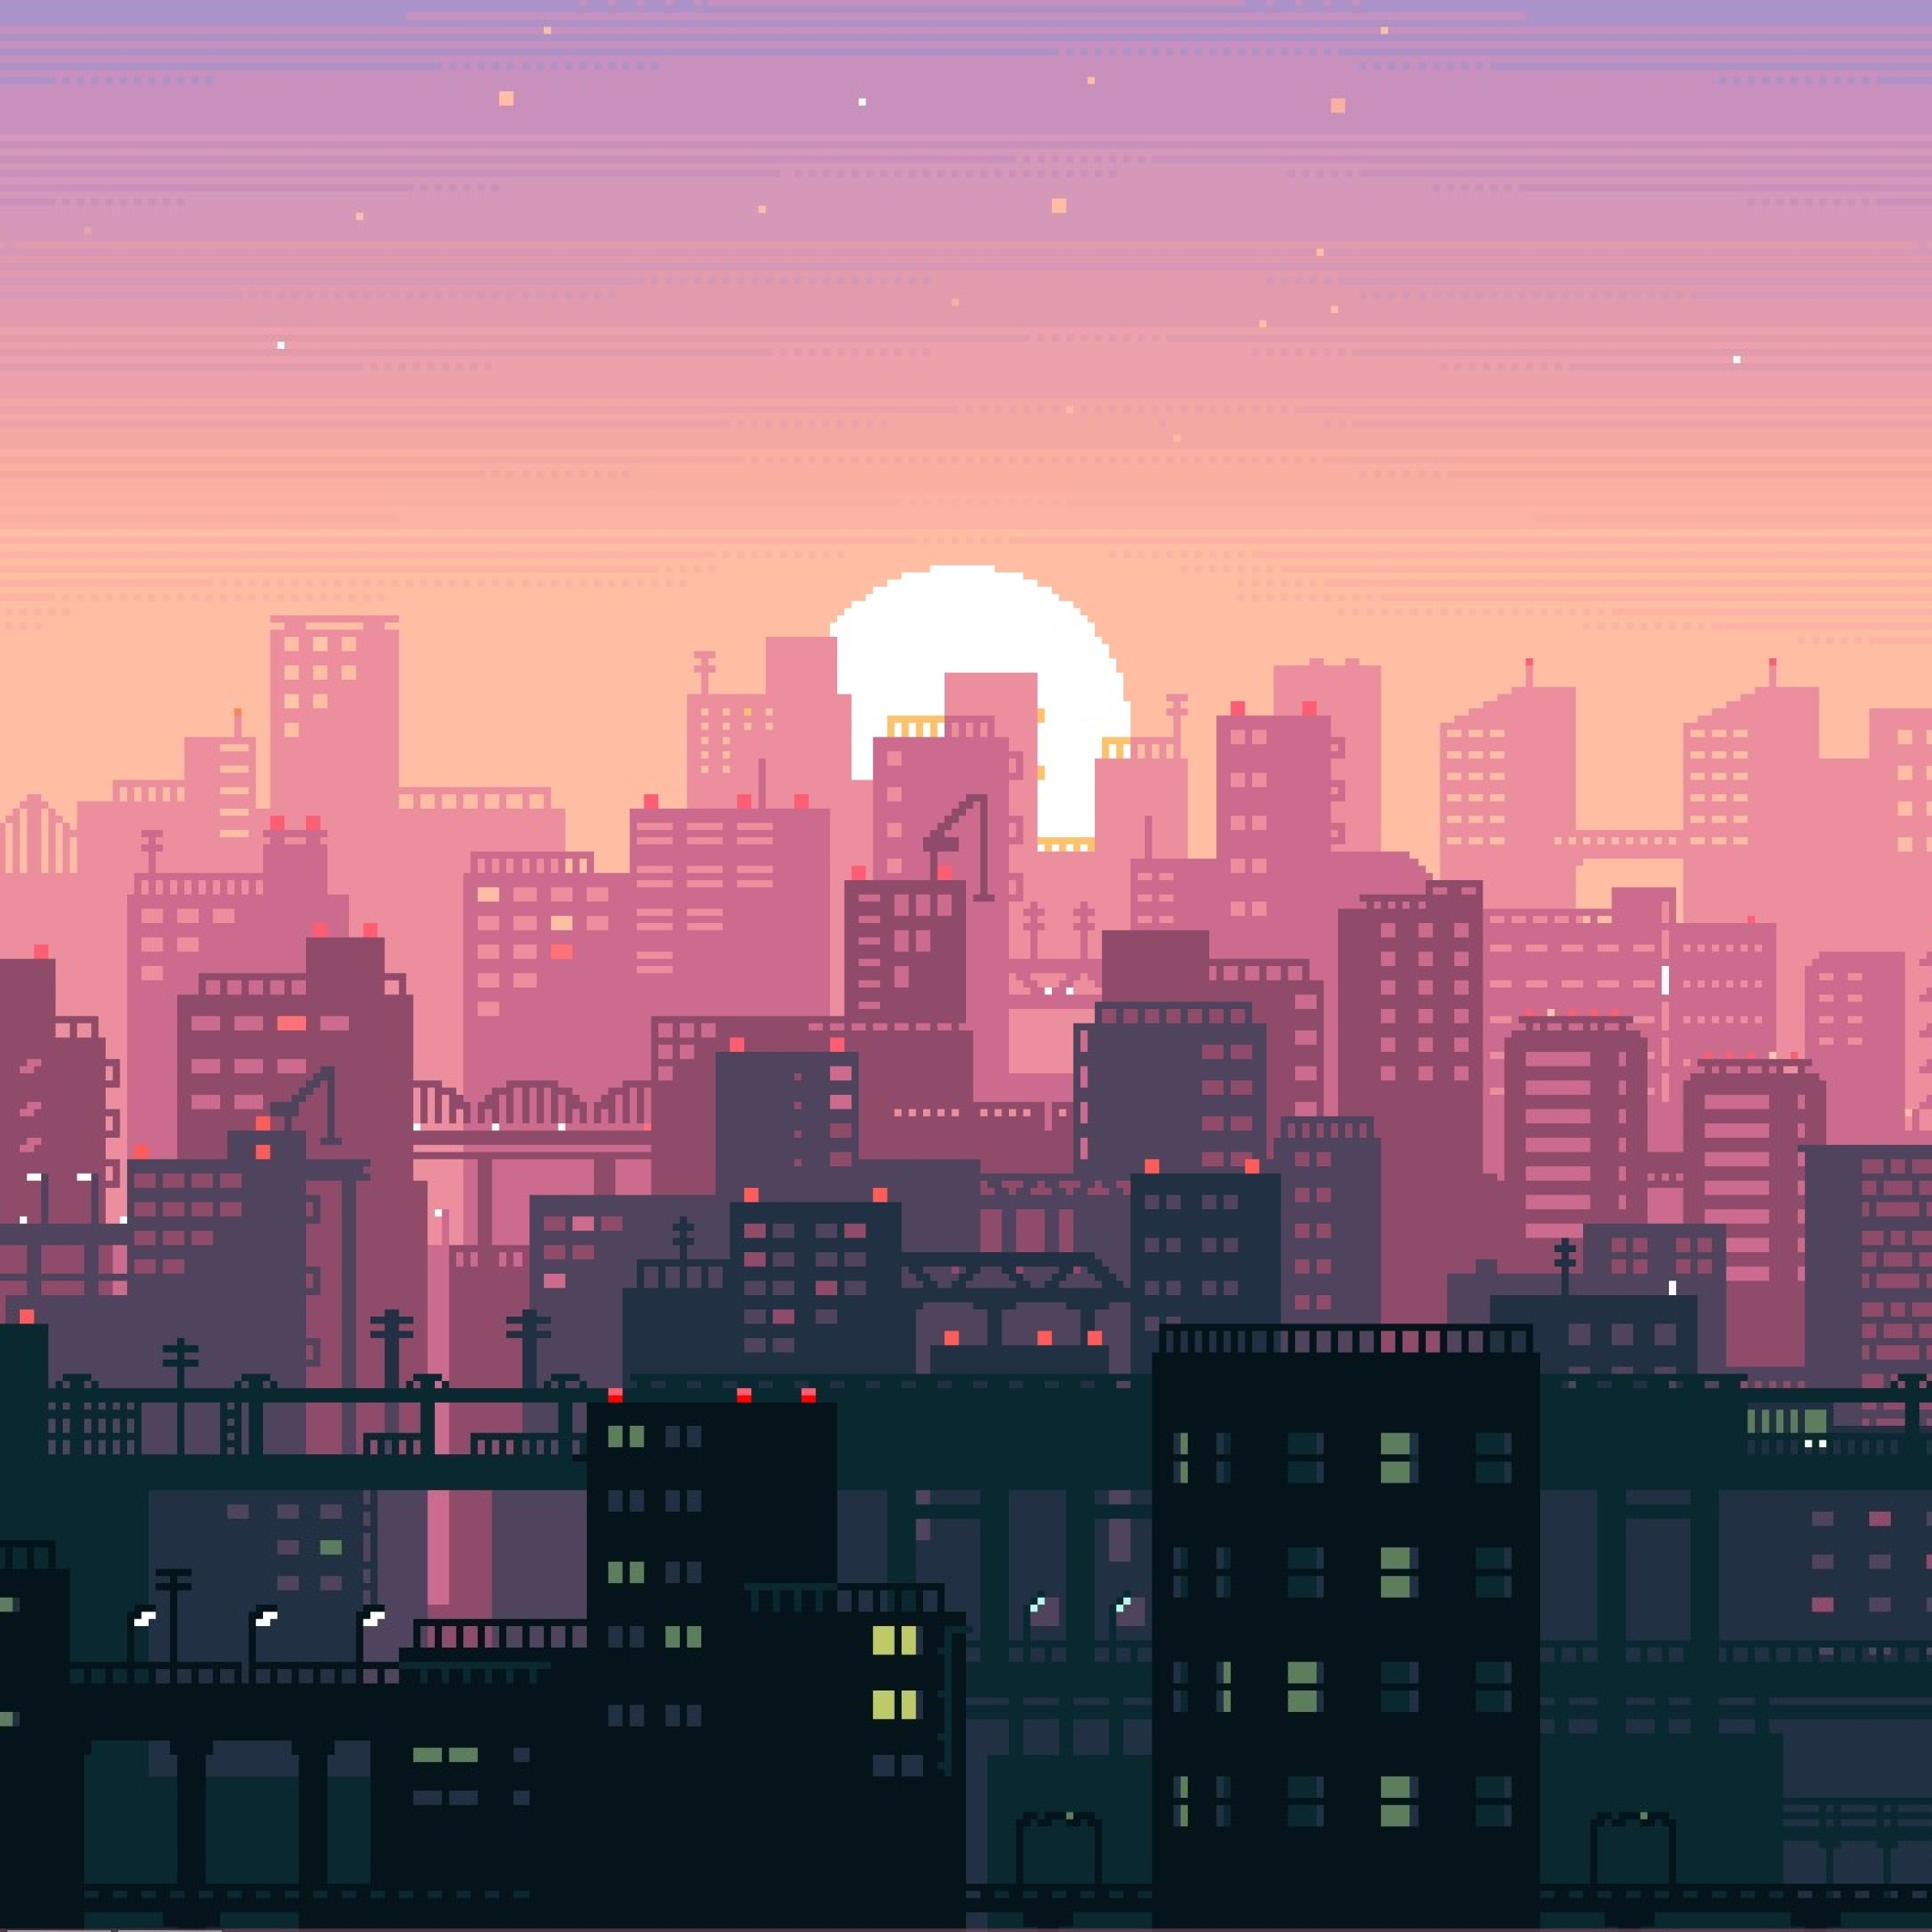 City Building Sunshine Pixel Art, Full HD Wallpaper